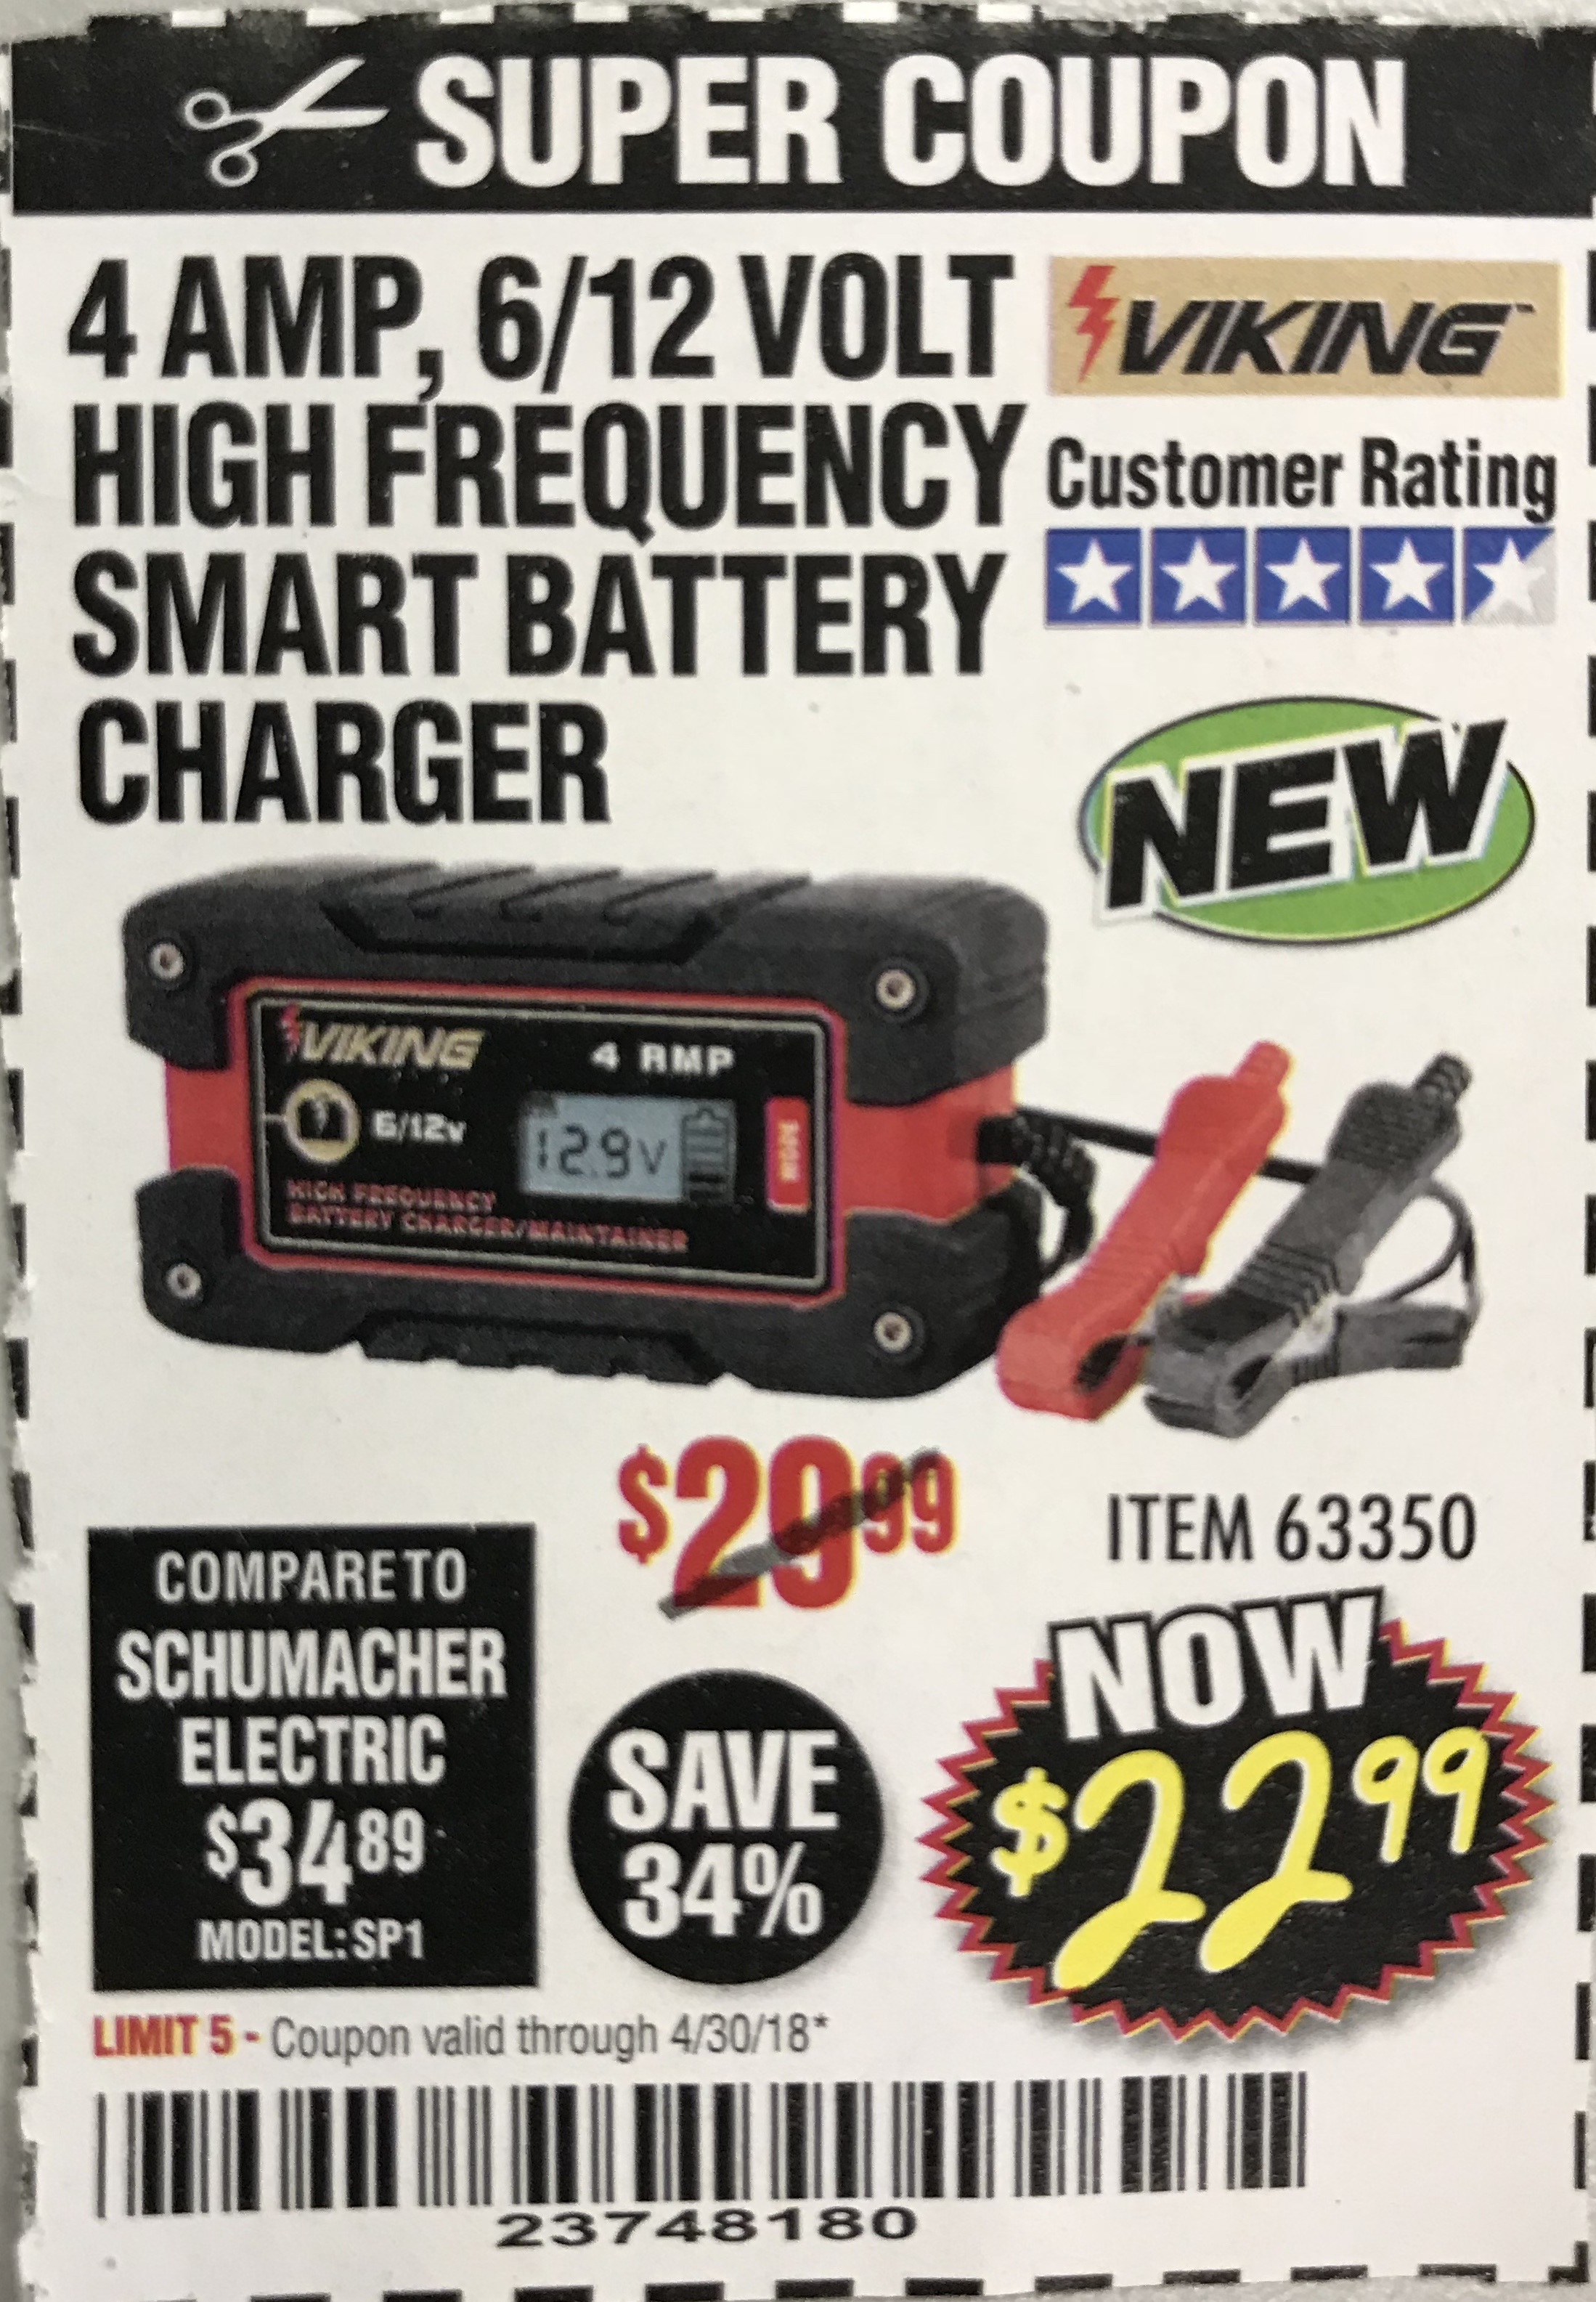 Harbor Freight Tools Coupon Database Free Coupons 25 Percent Off Coupons Toolbox Coupons 4amp 6 12v High Frequency Smart Battery Charger